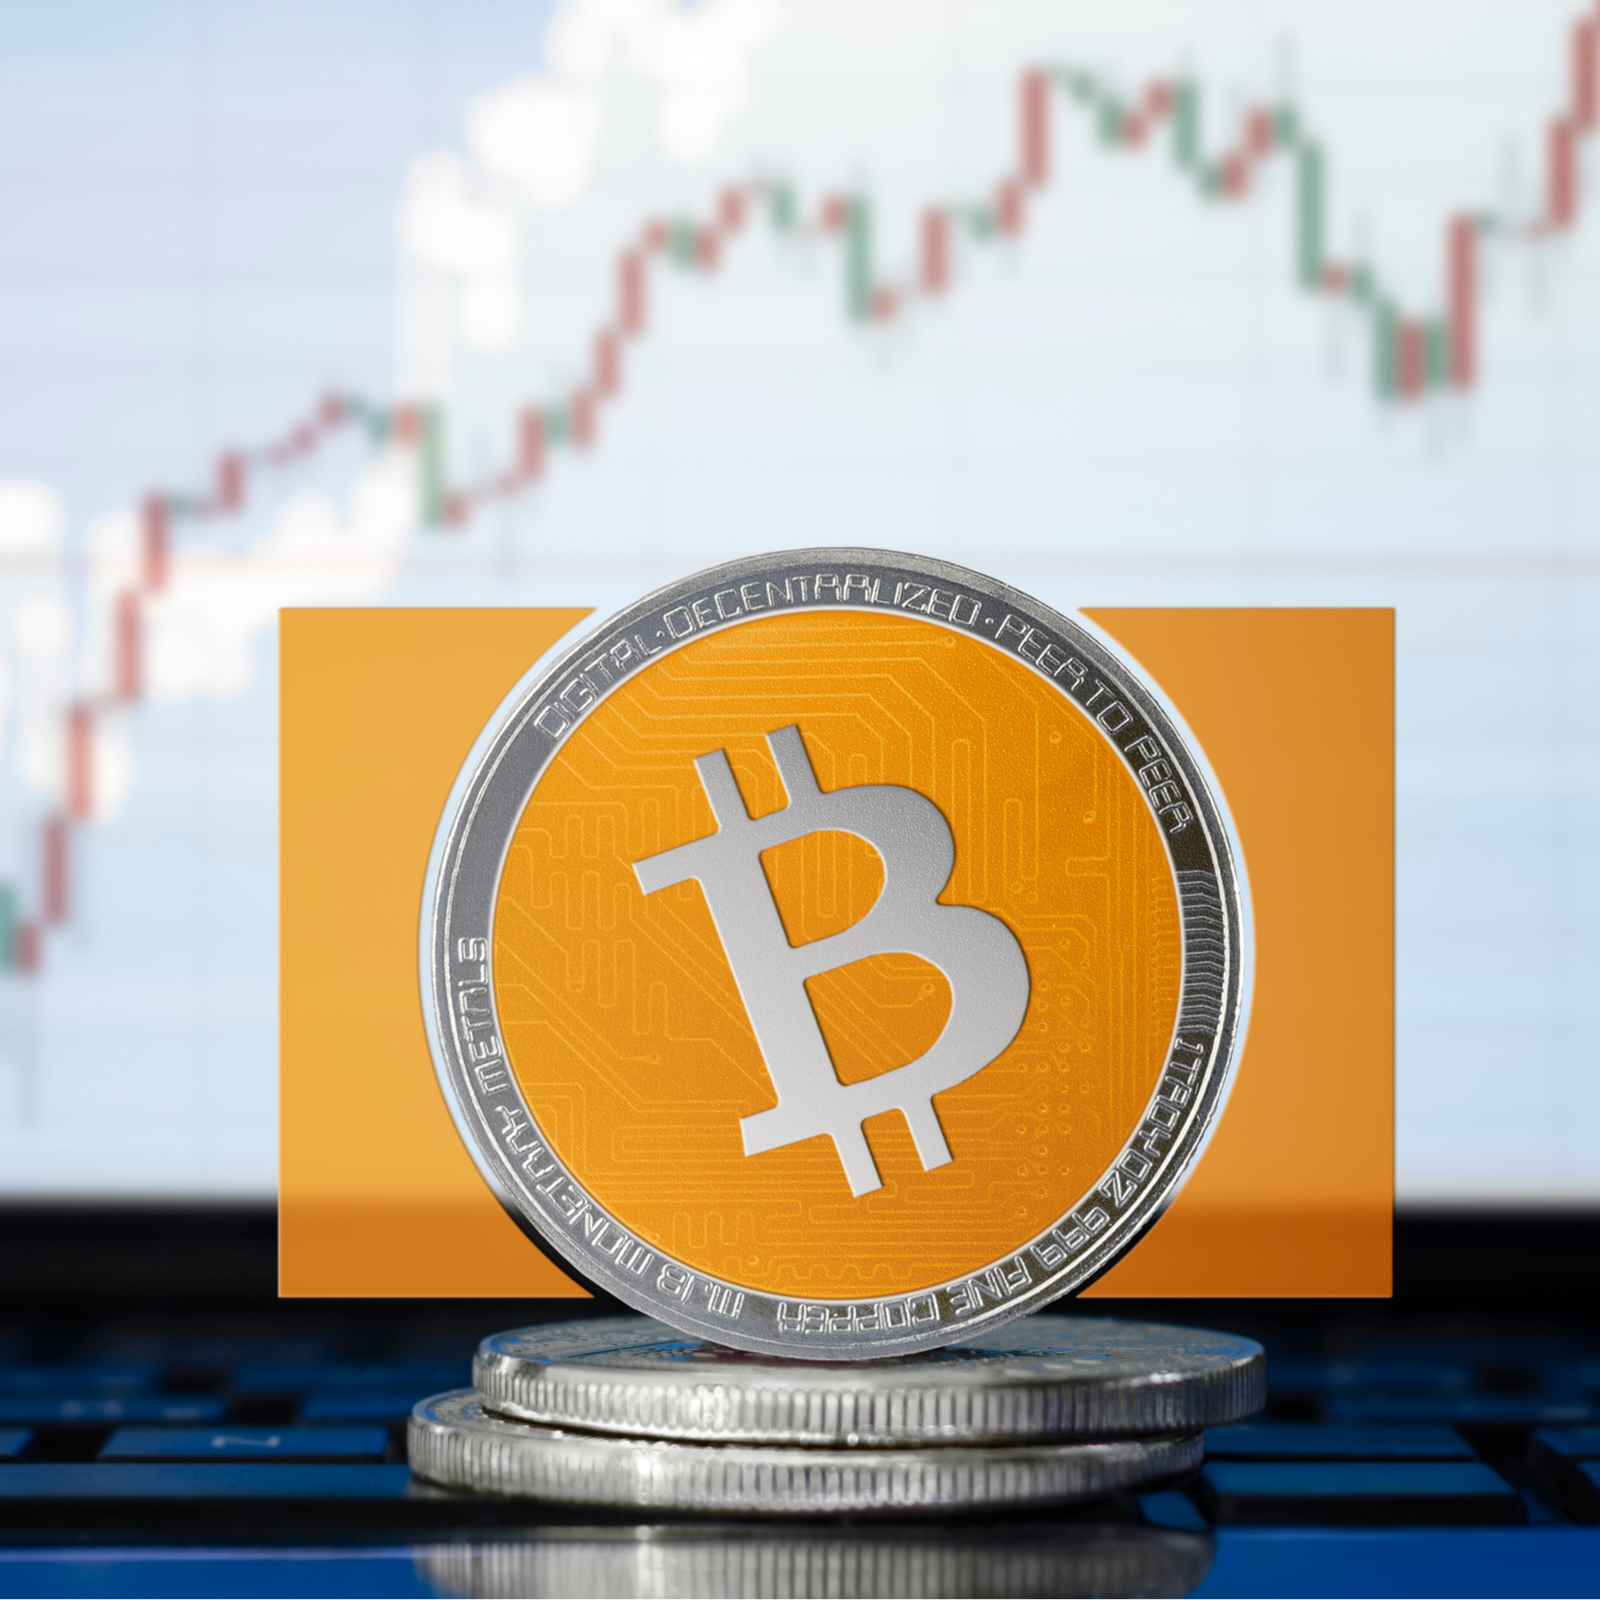 CMC Markets Adds Bitcoin Cash to Cryptocurrency Offering